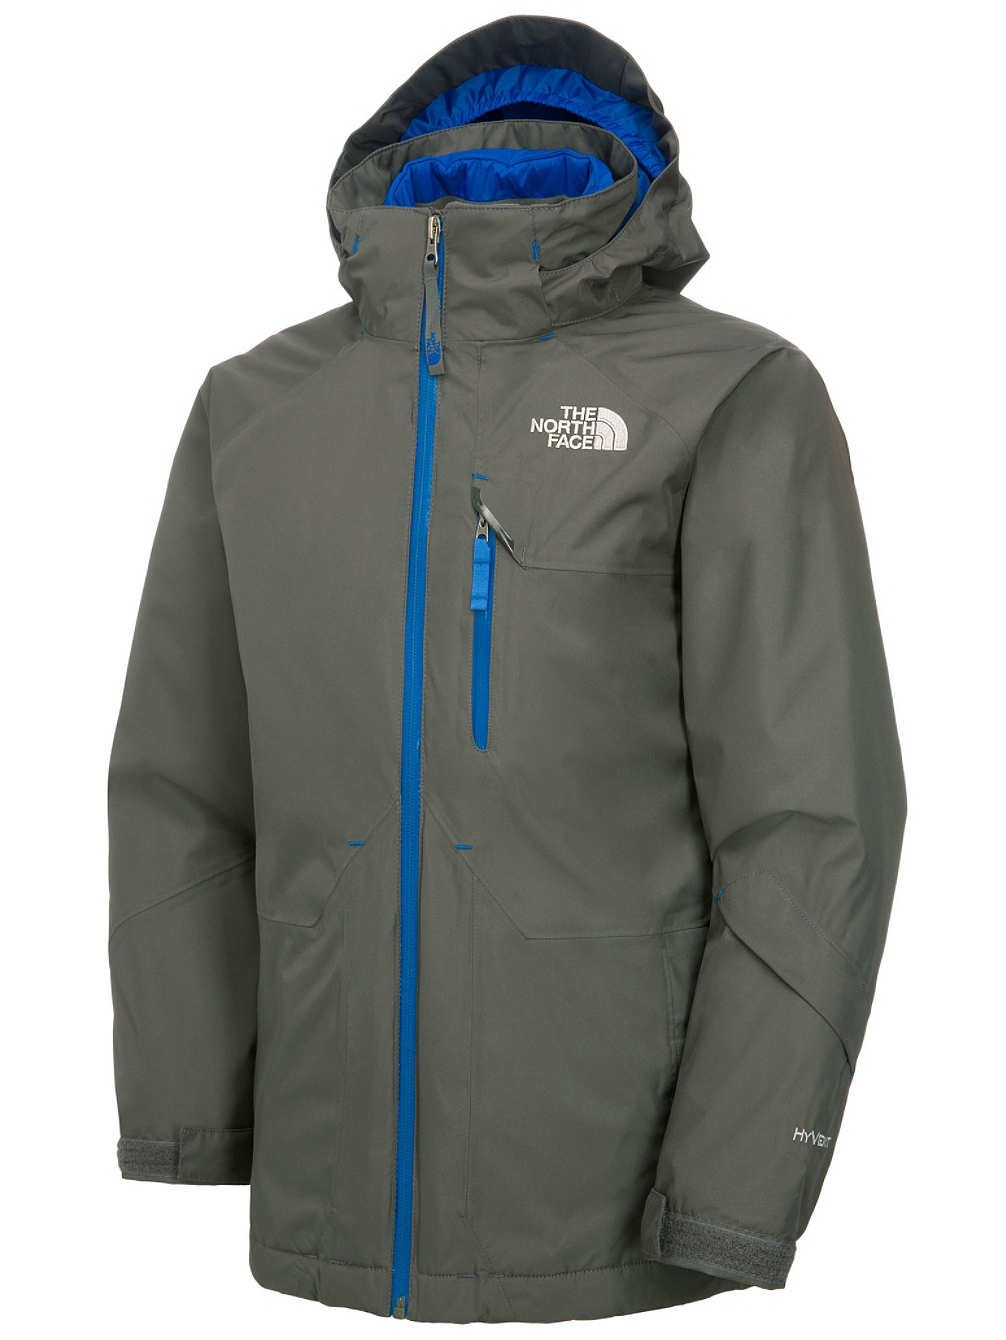 wholesale dealer 07816 08f0a The North Face Boy's Ozone Triclimate Jacket - Graphite Grey ...